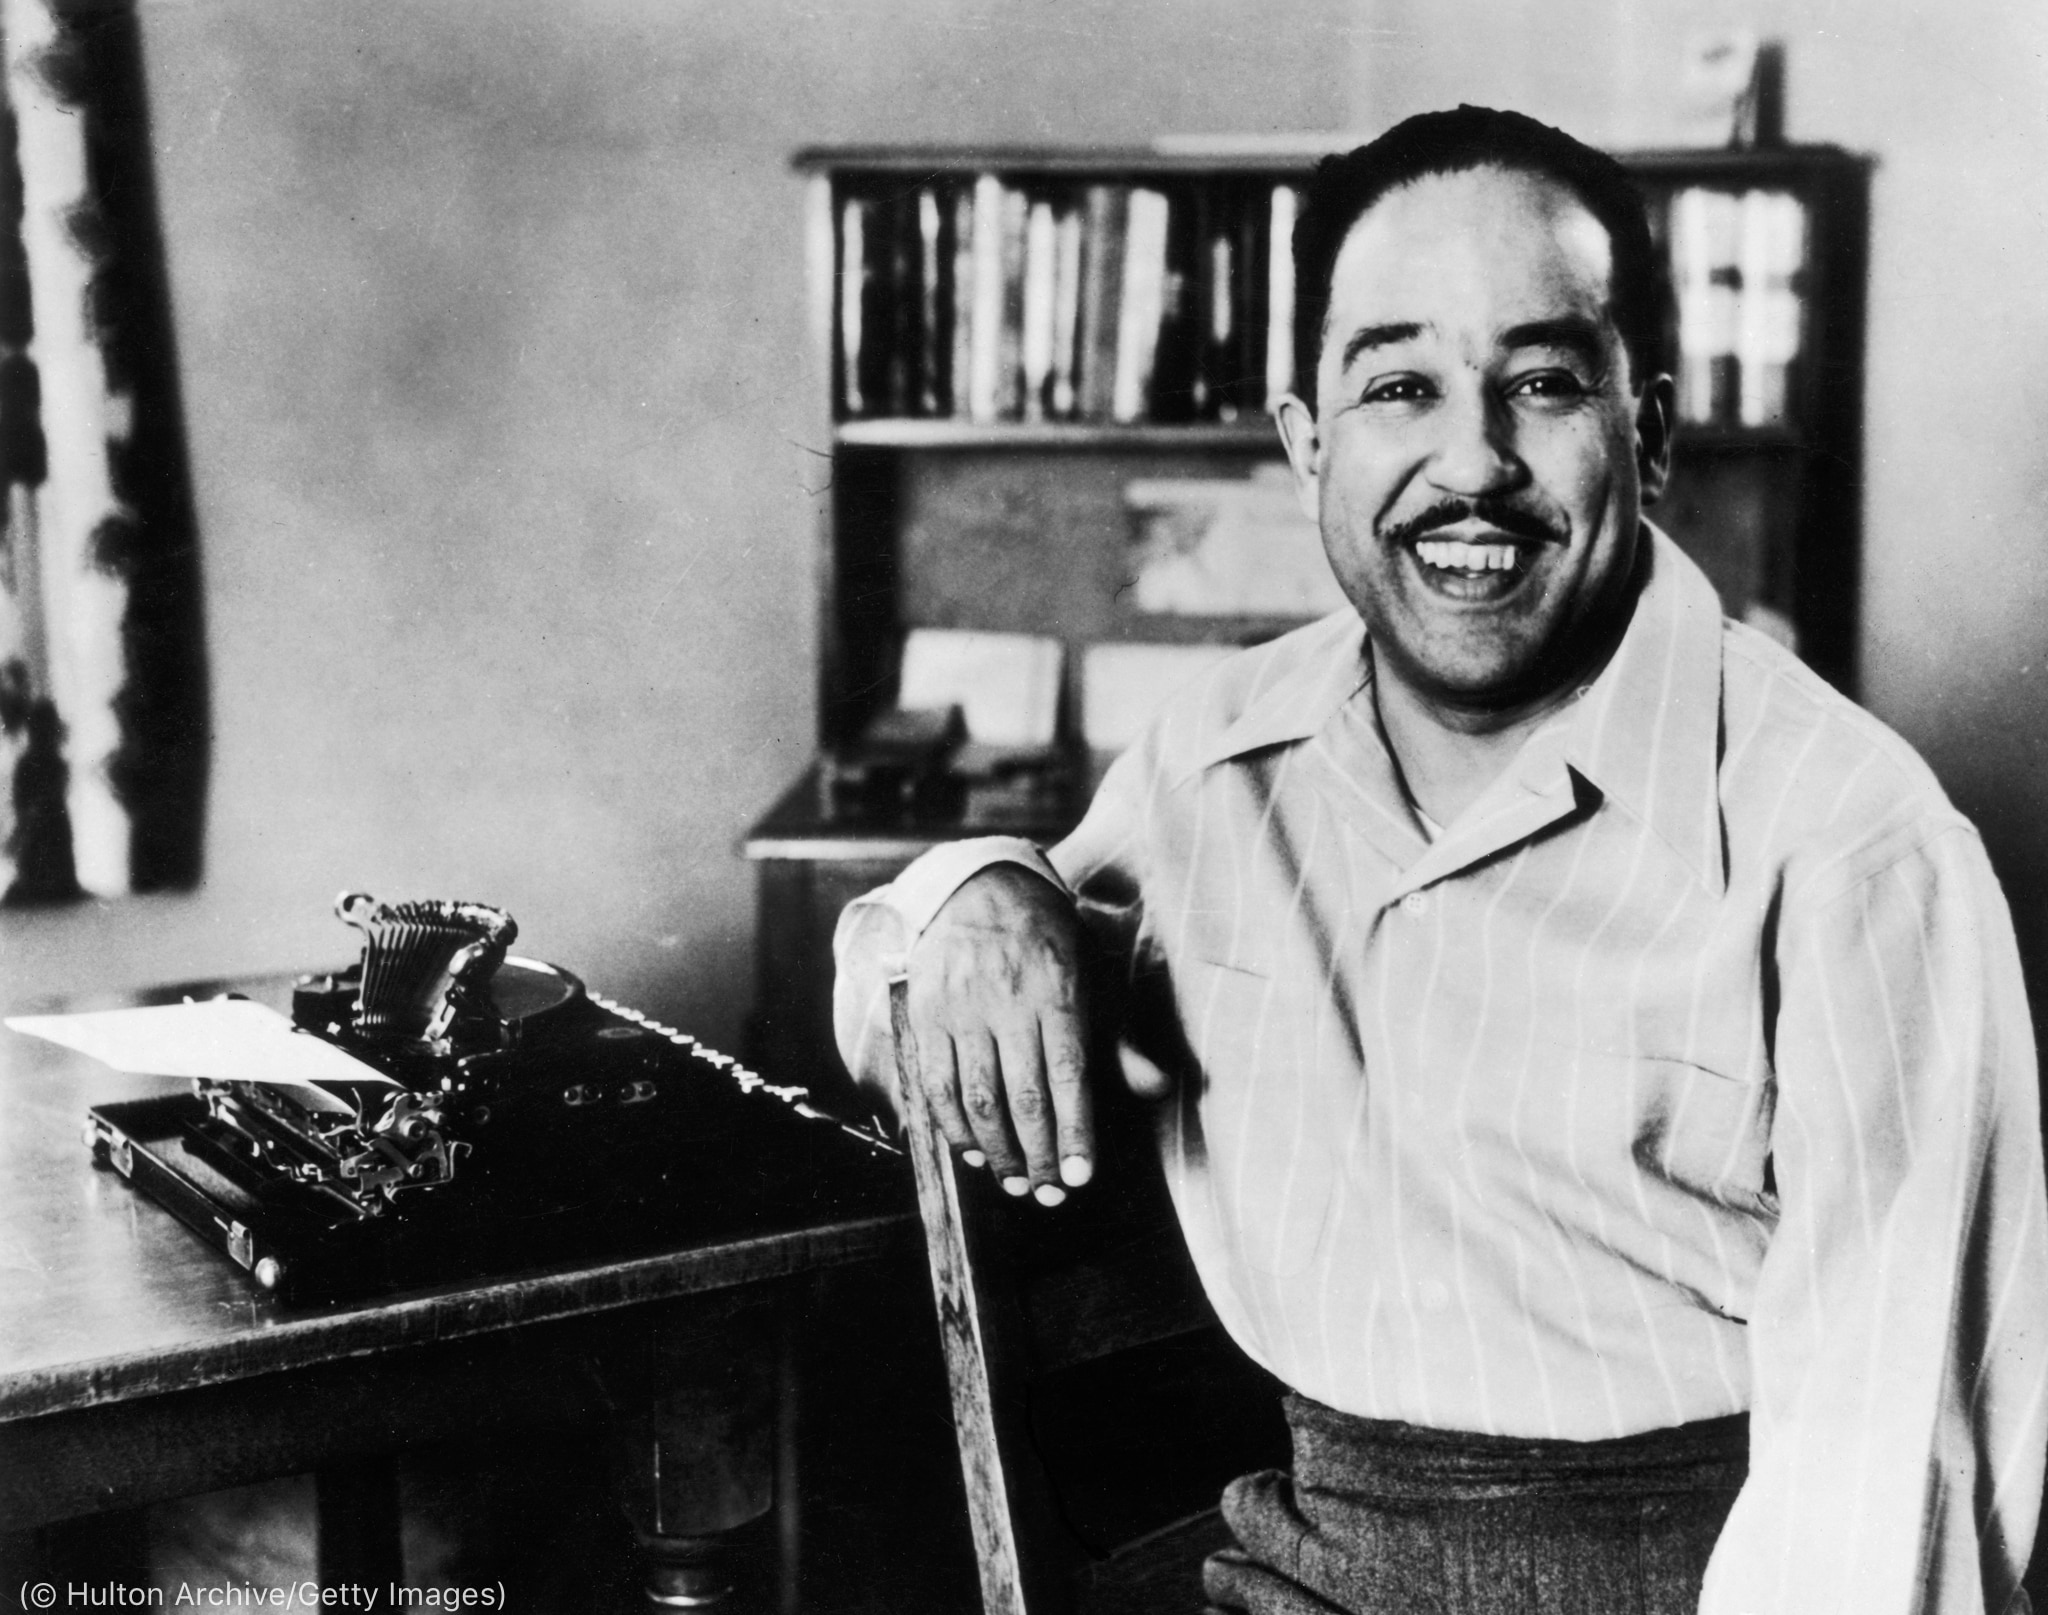 Langston Hughes sitting next to typewriter on desk (© Hulton Archive/Getty Images)